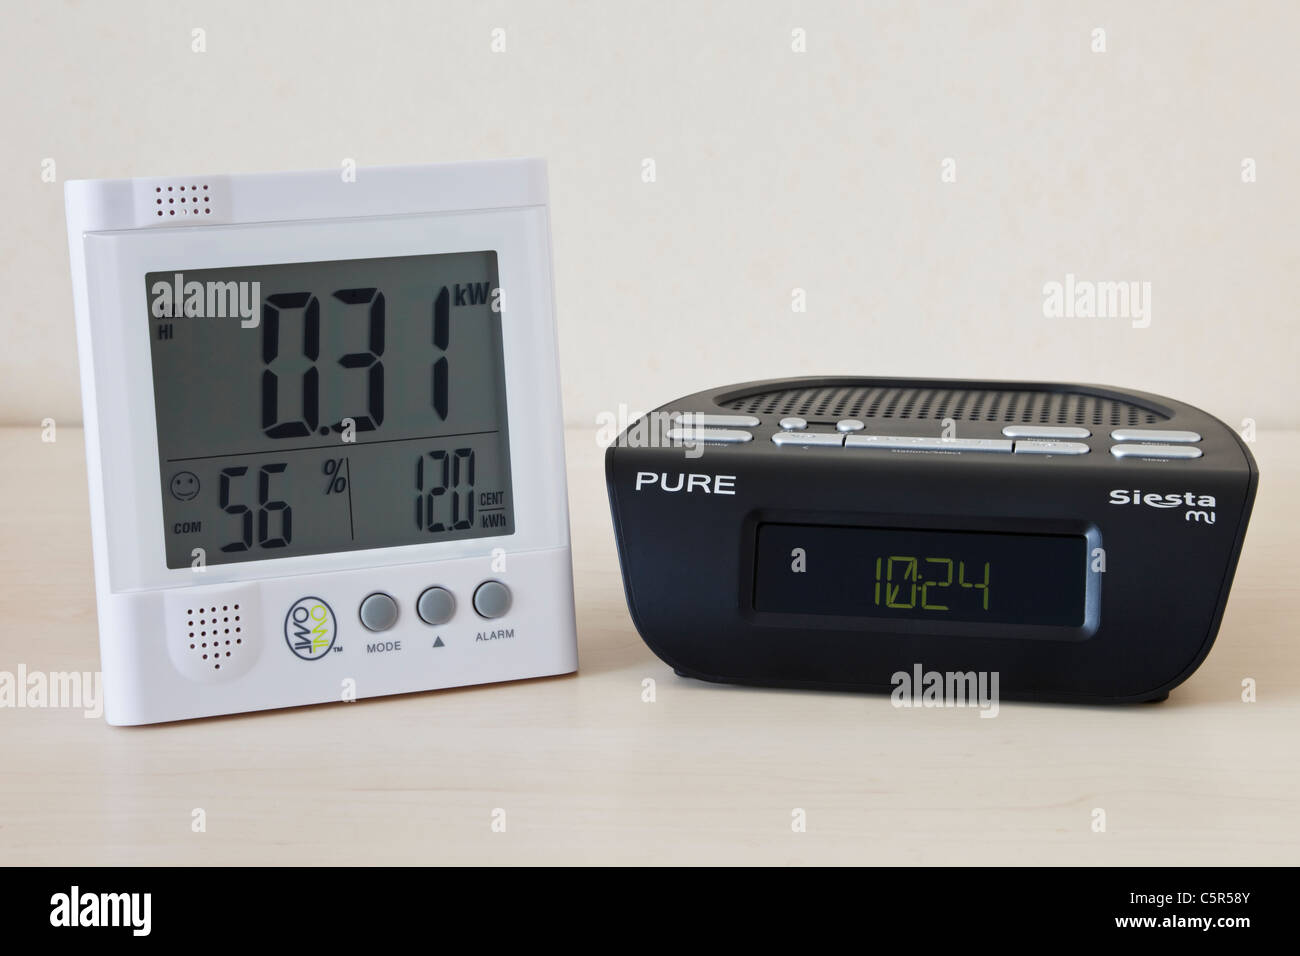 DAB digital alarm clock radio and Owl wireless LED electricity monitor showing kilowatts of electricity being used - Stock Image